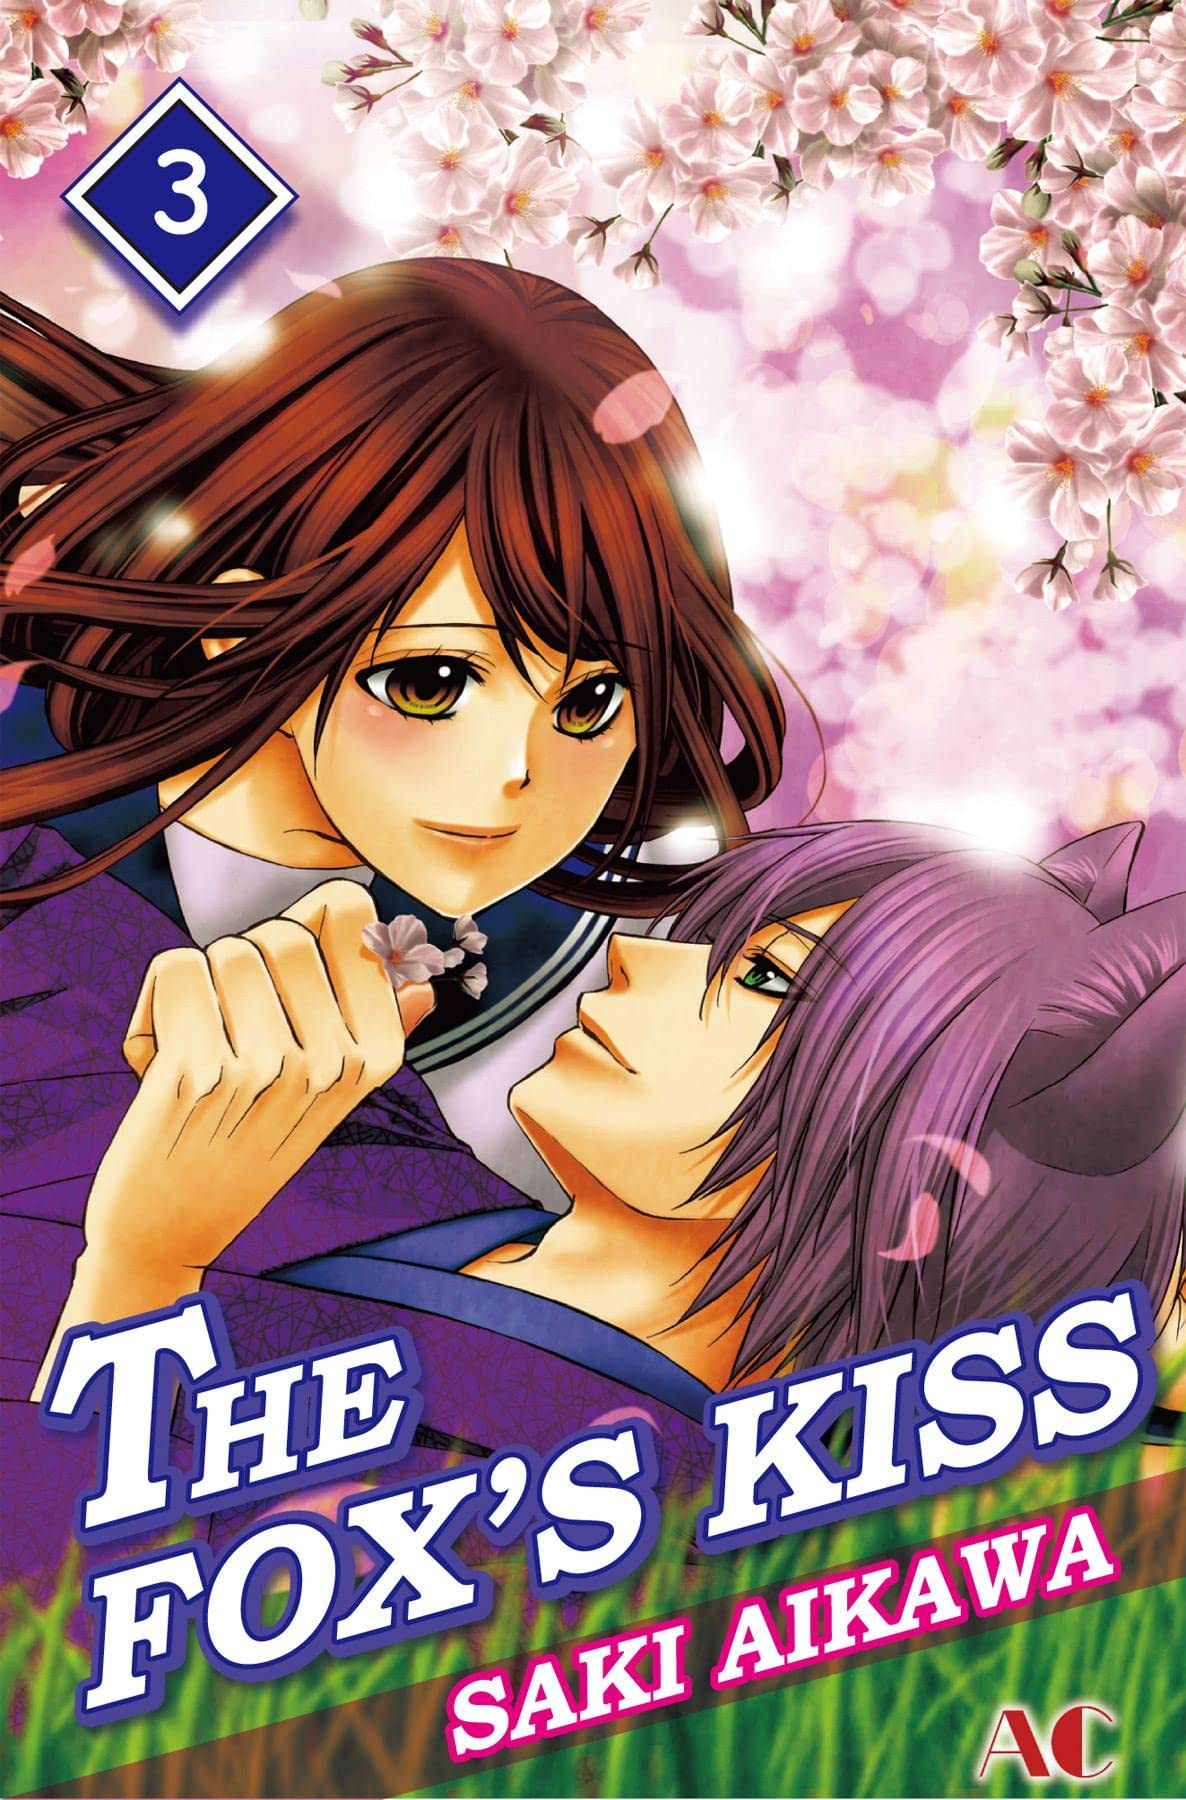 THE FOX'S KISS Vol. 3